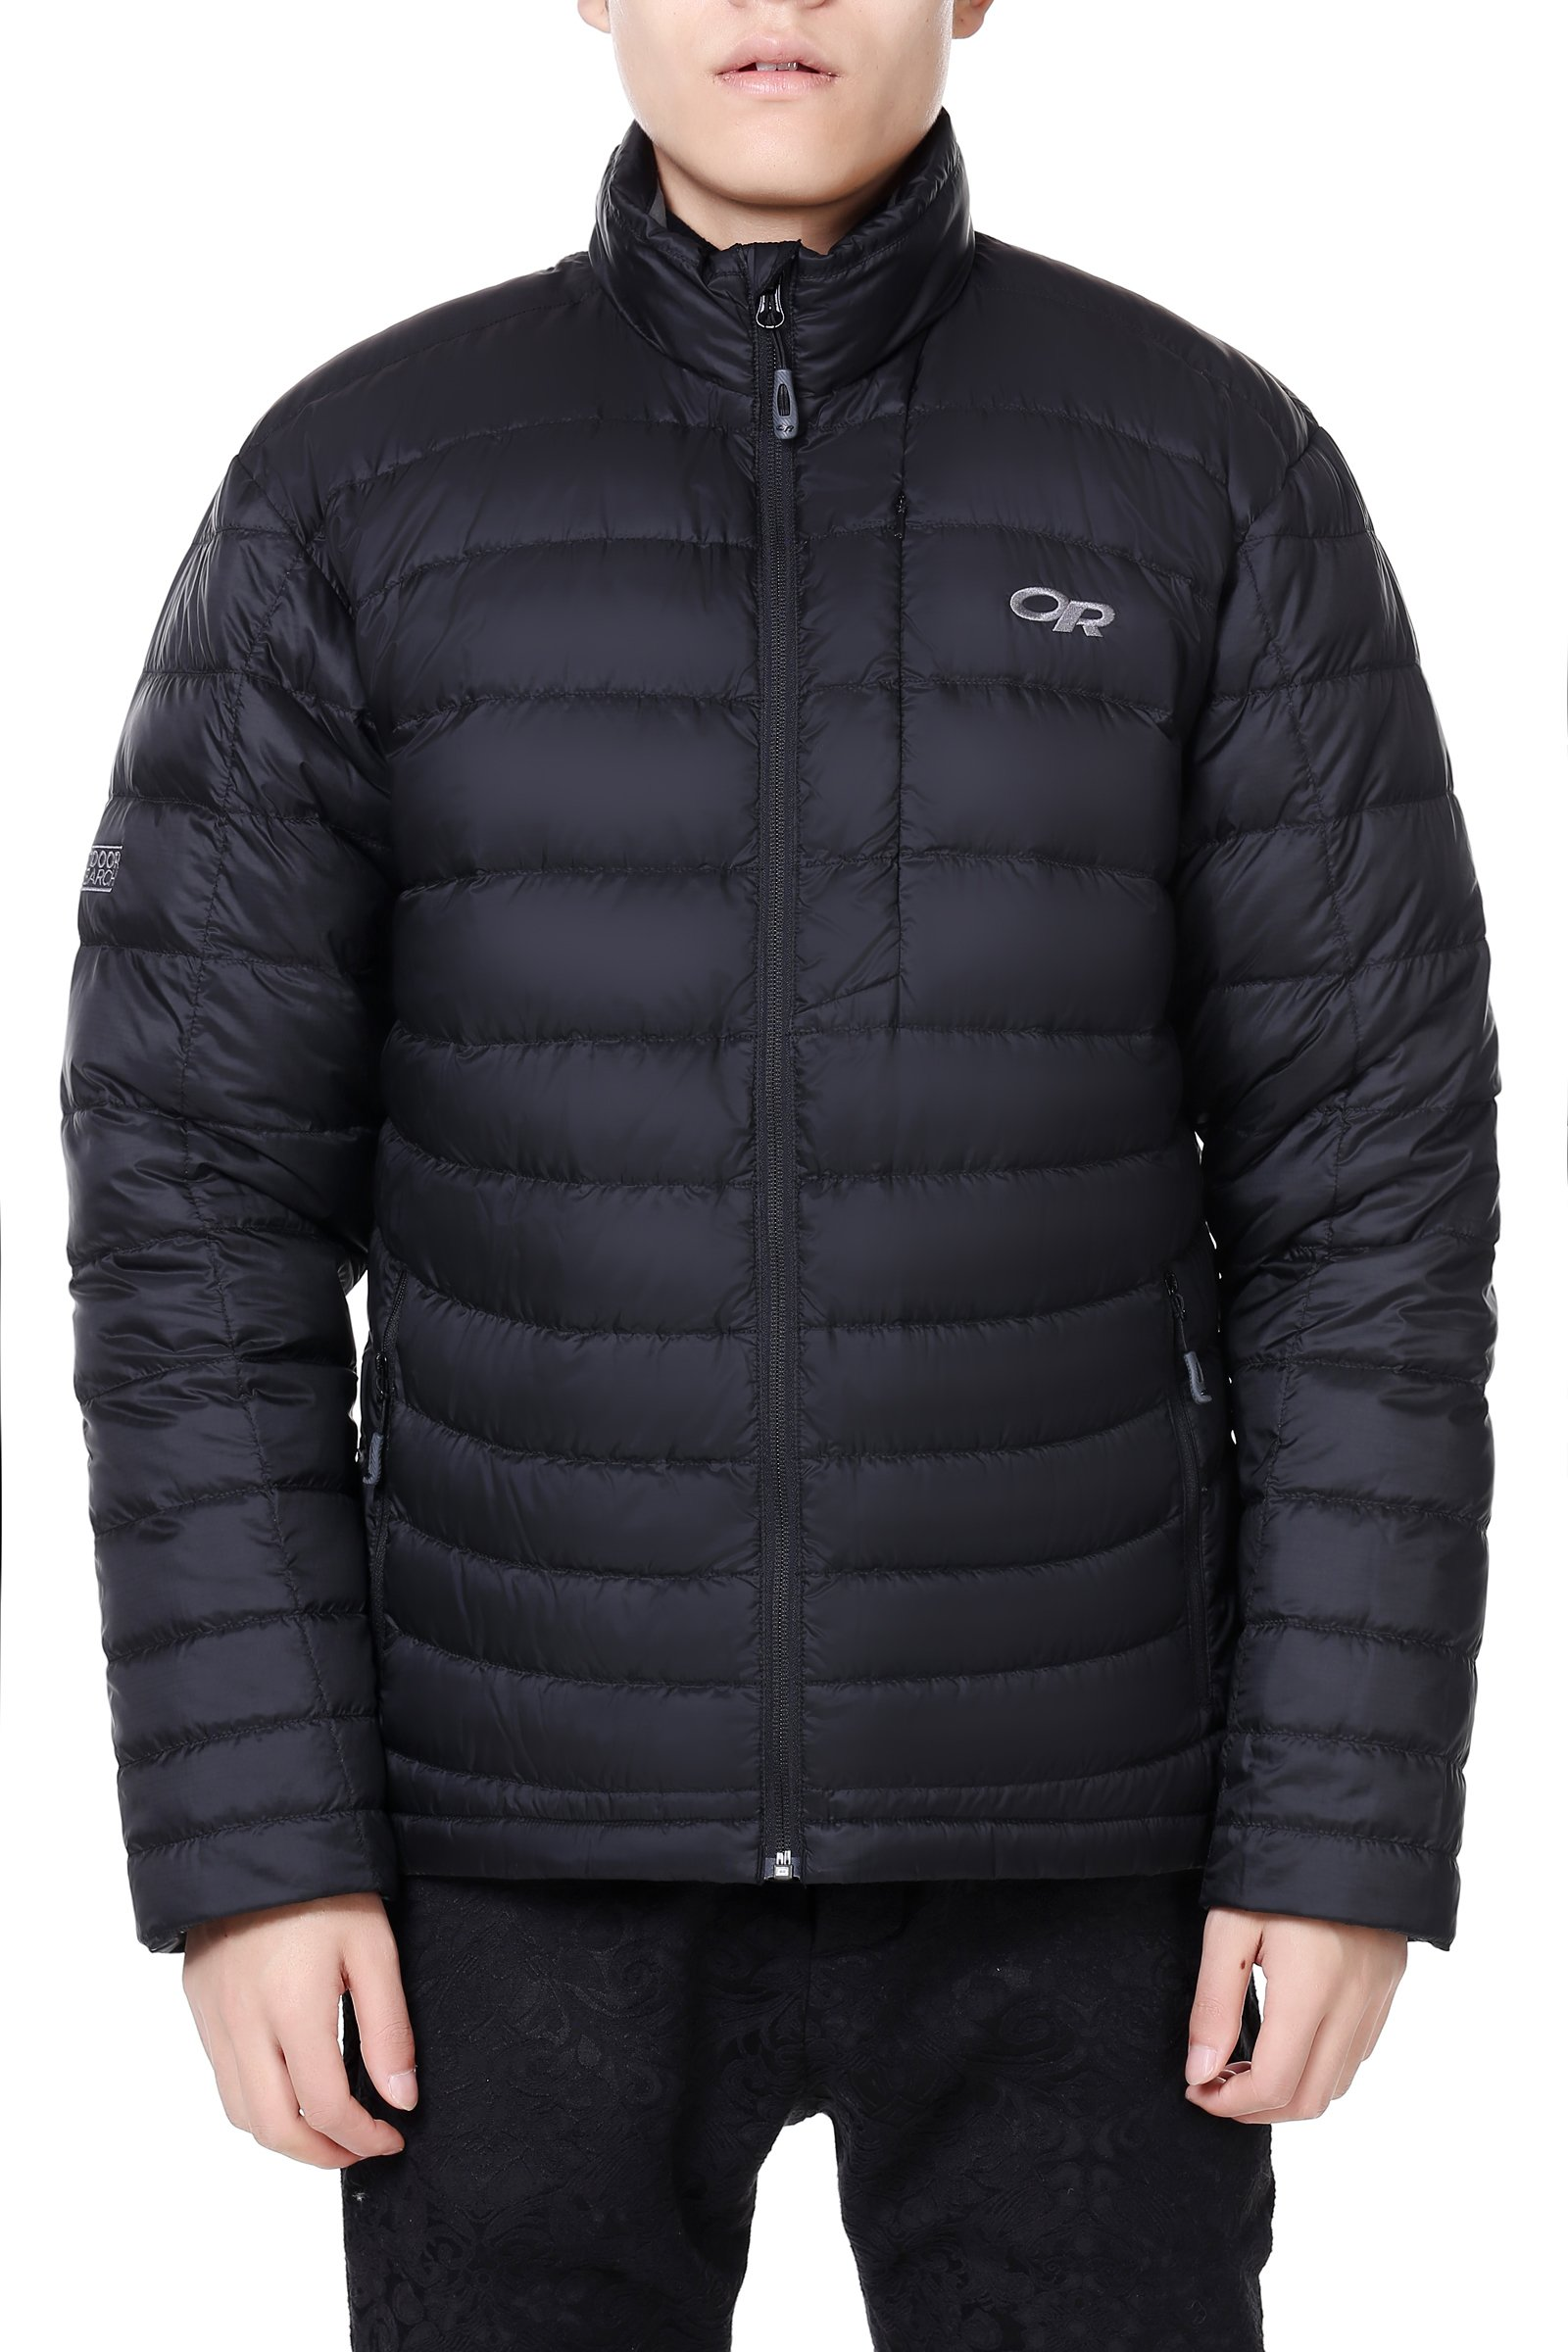 Outdoor Research Men's Transcendent Sweater (Black, Small) by Outdoor Research (Image #1)